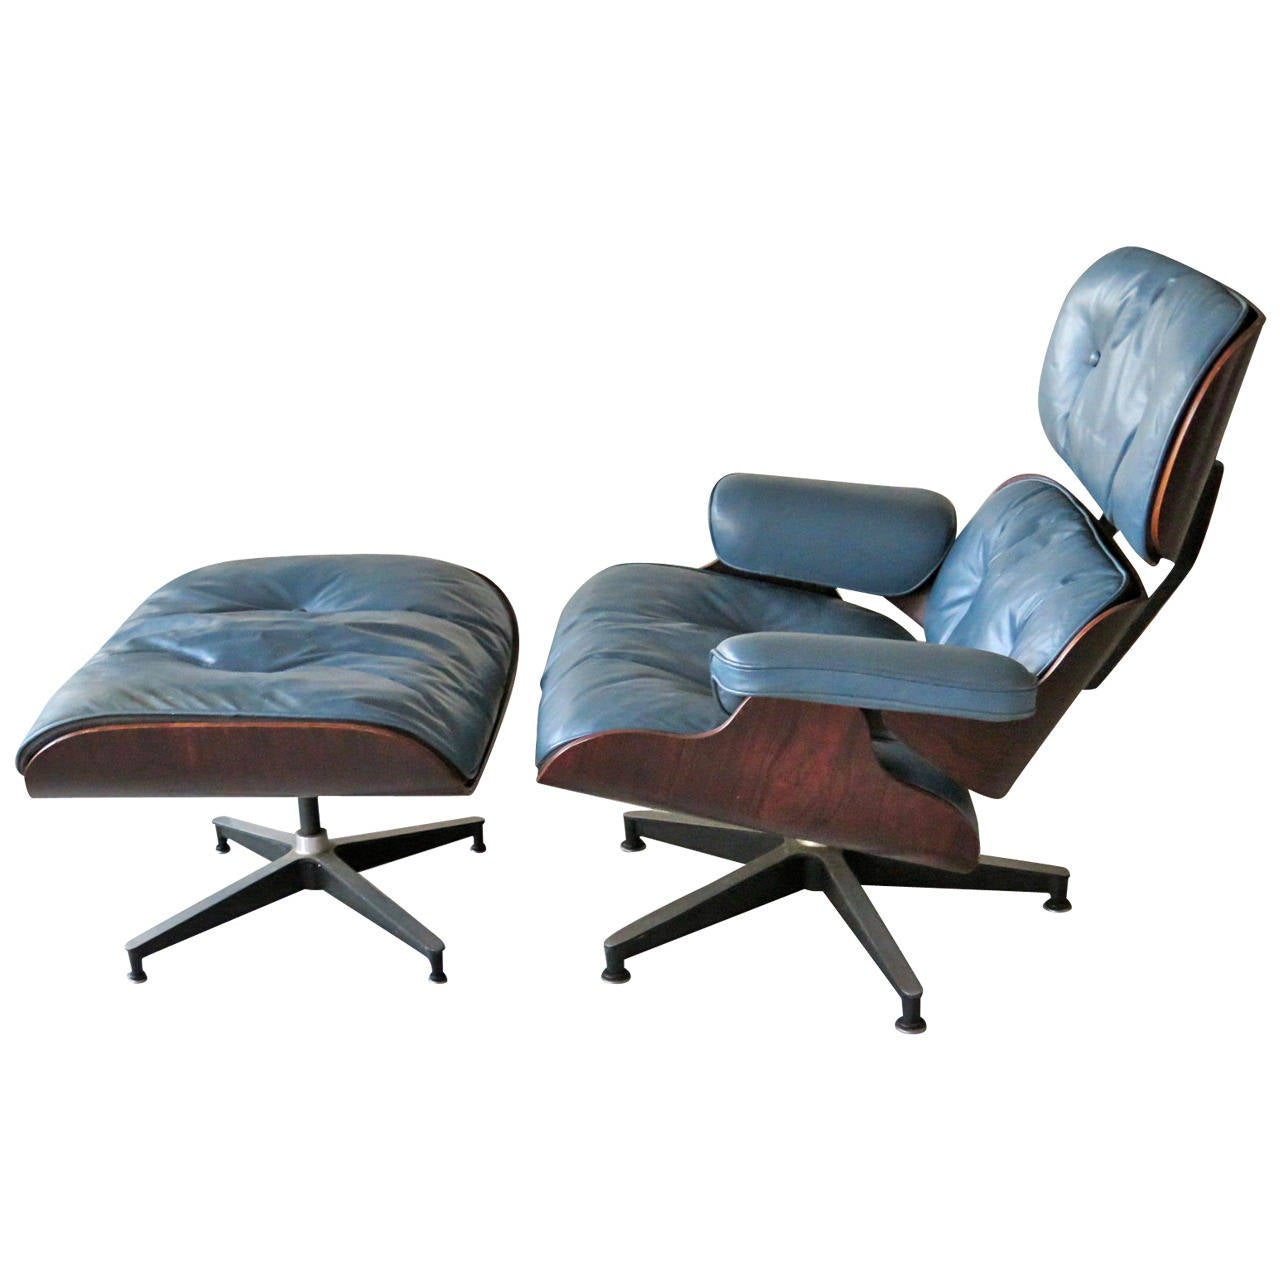 charles eames herman miller lounge chair in blue leather at 1stdibs. Black Bedroom Furniture Sets. Home Design Ideas